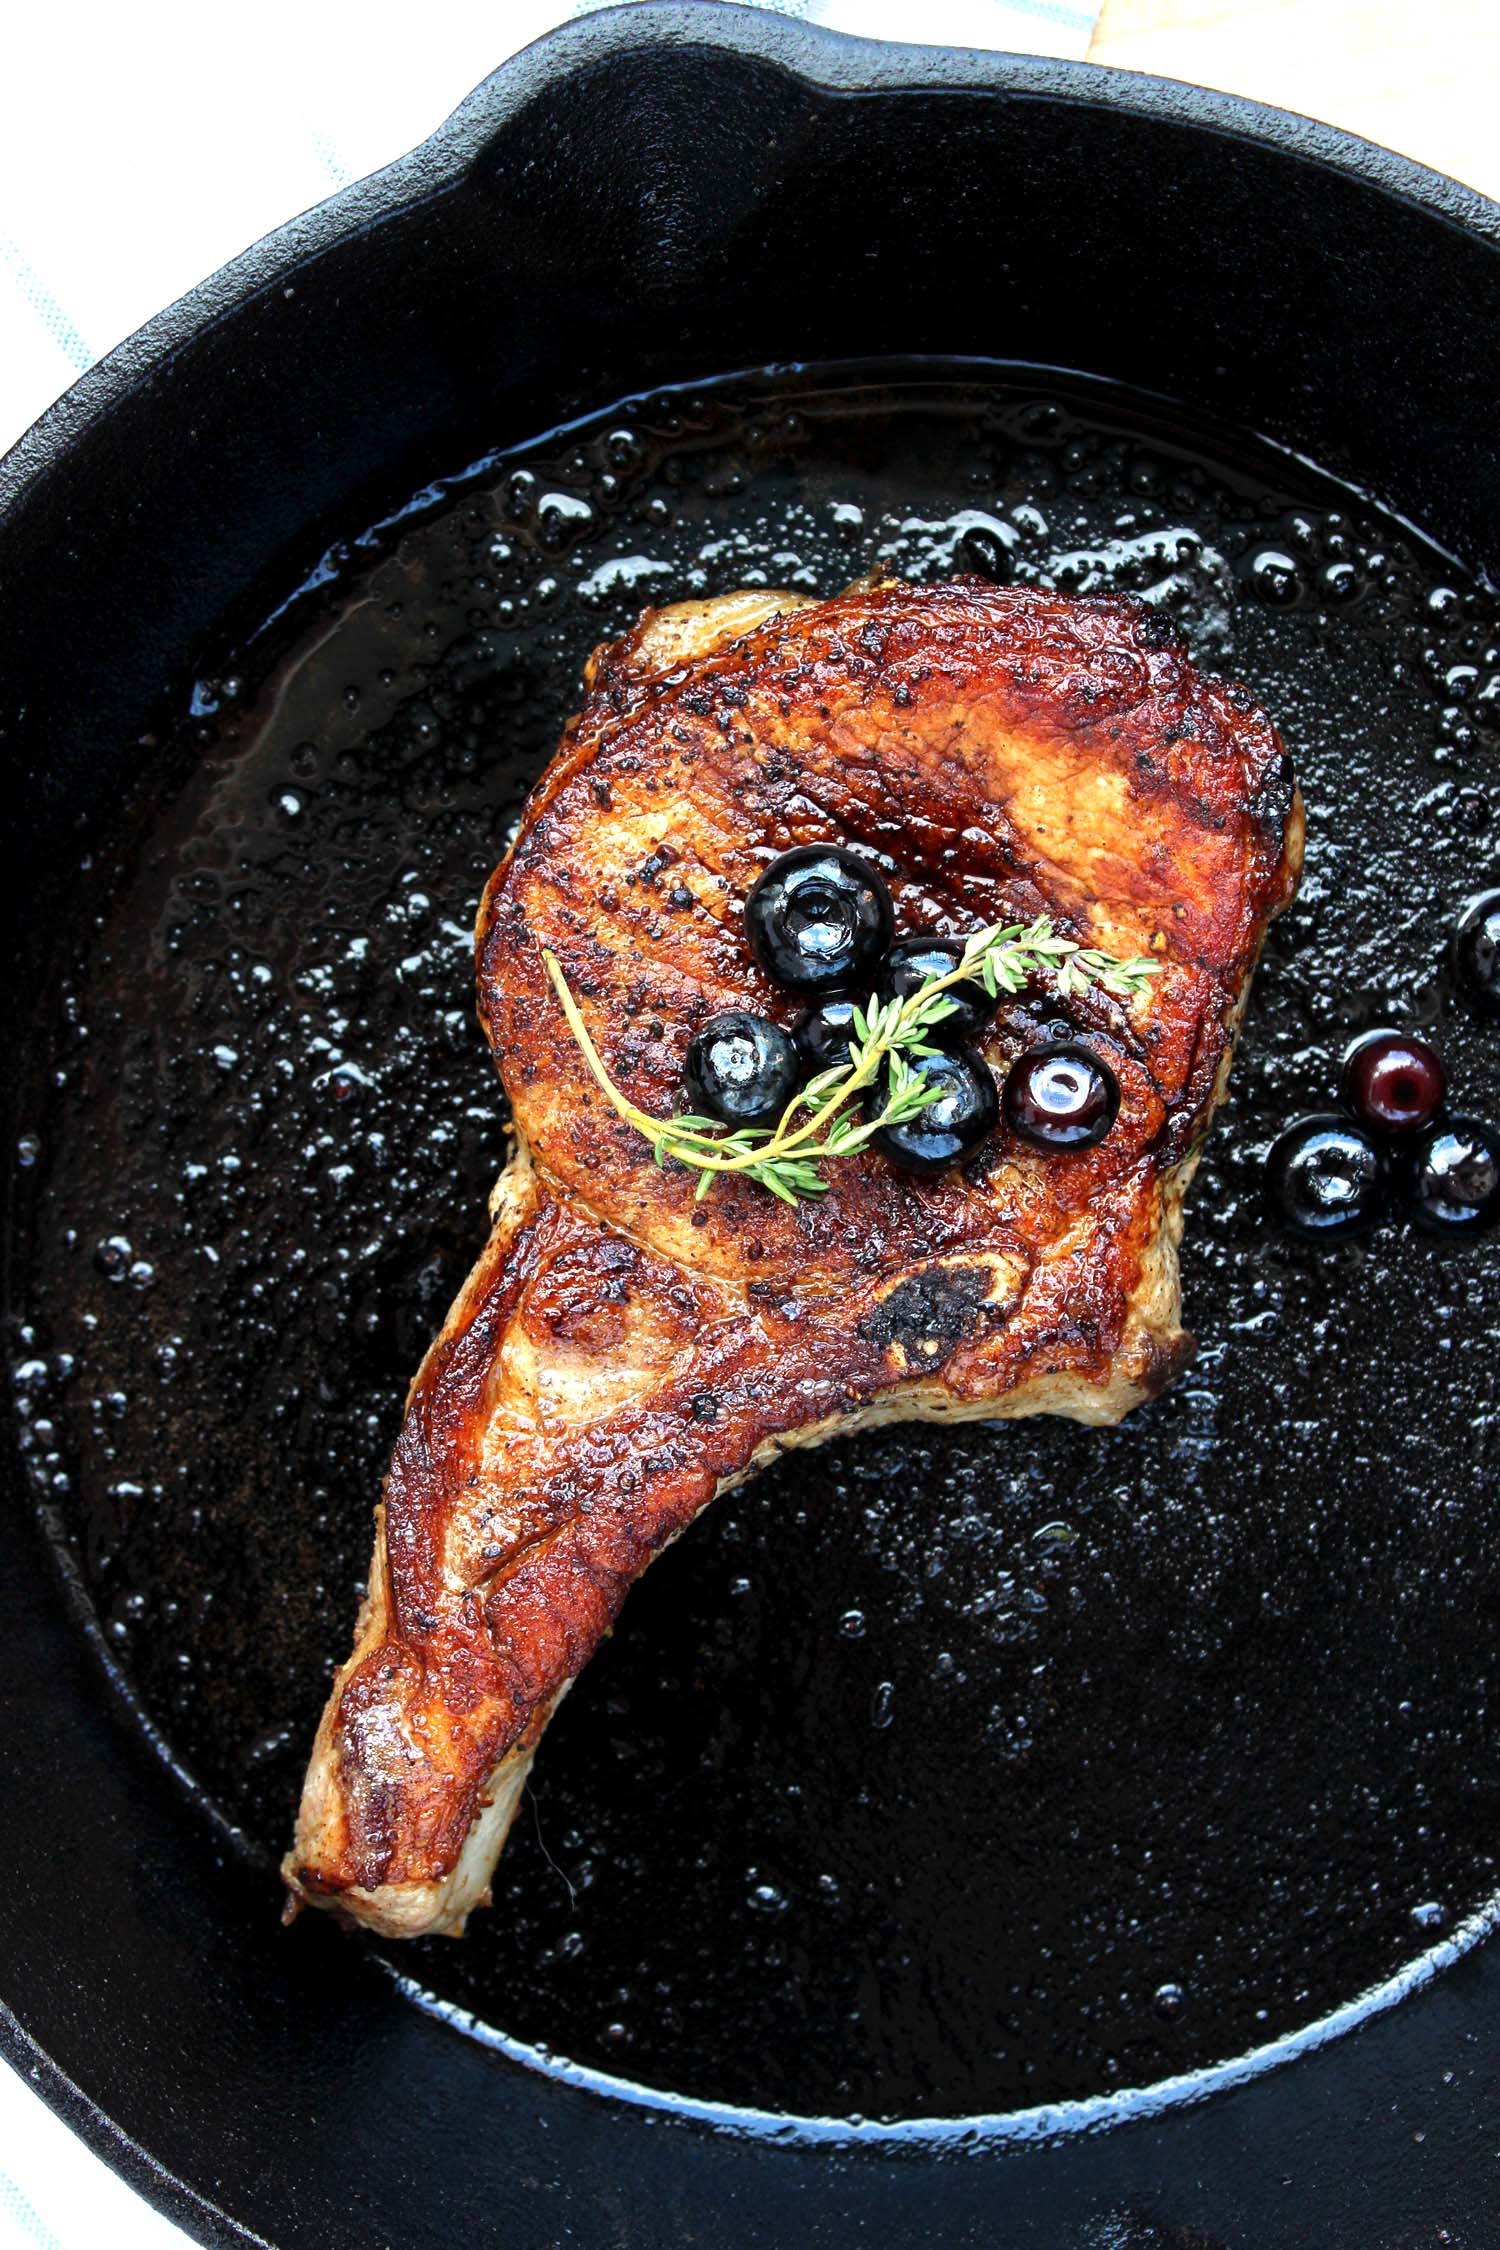 Butter Braised Pork Chops with Blueberry Balsamic Sauce   | Image:   Laura Messersmith